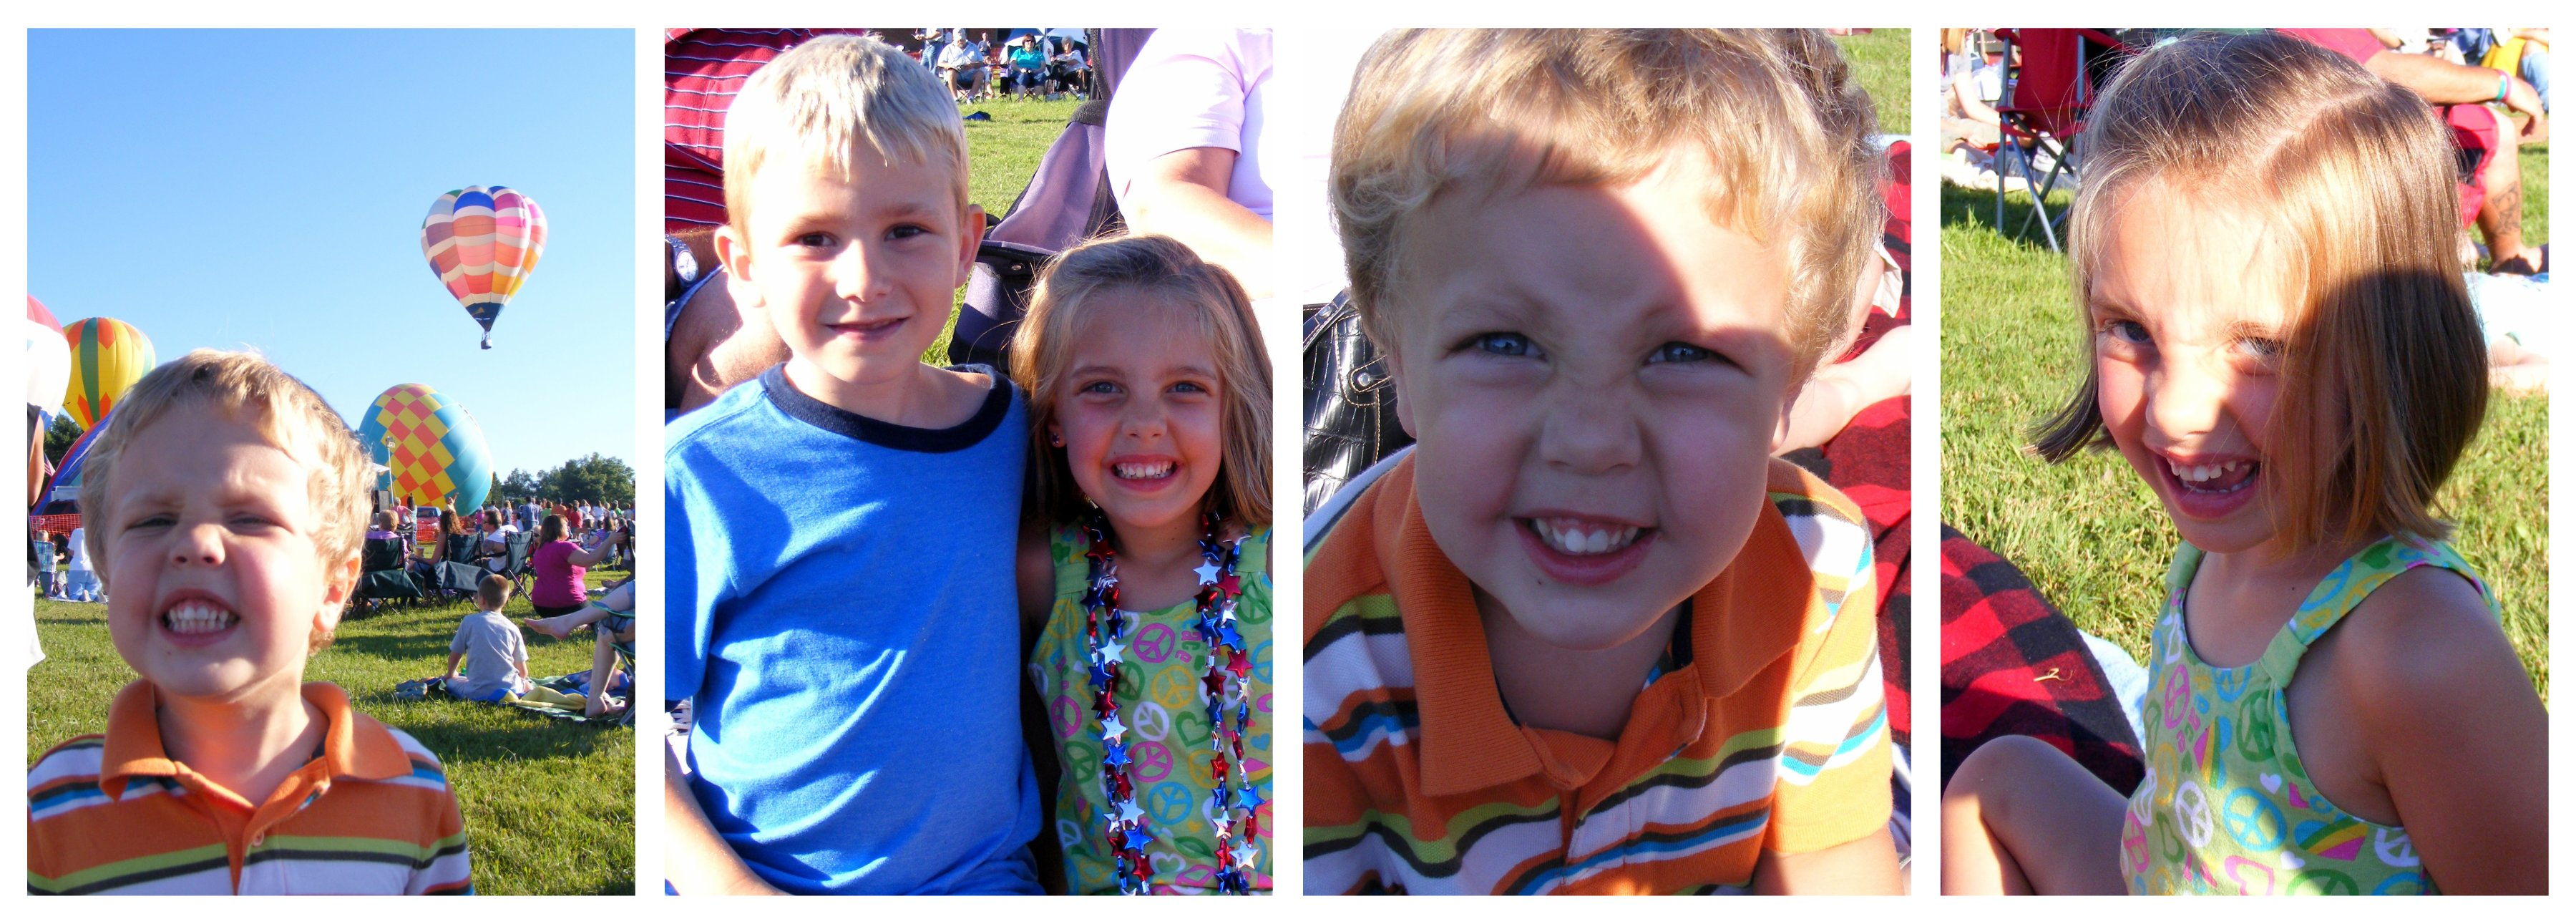 kids at balloon  festival collage